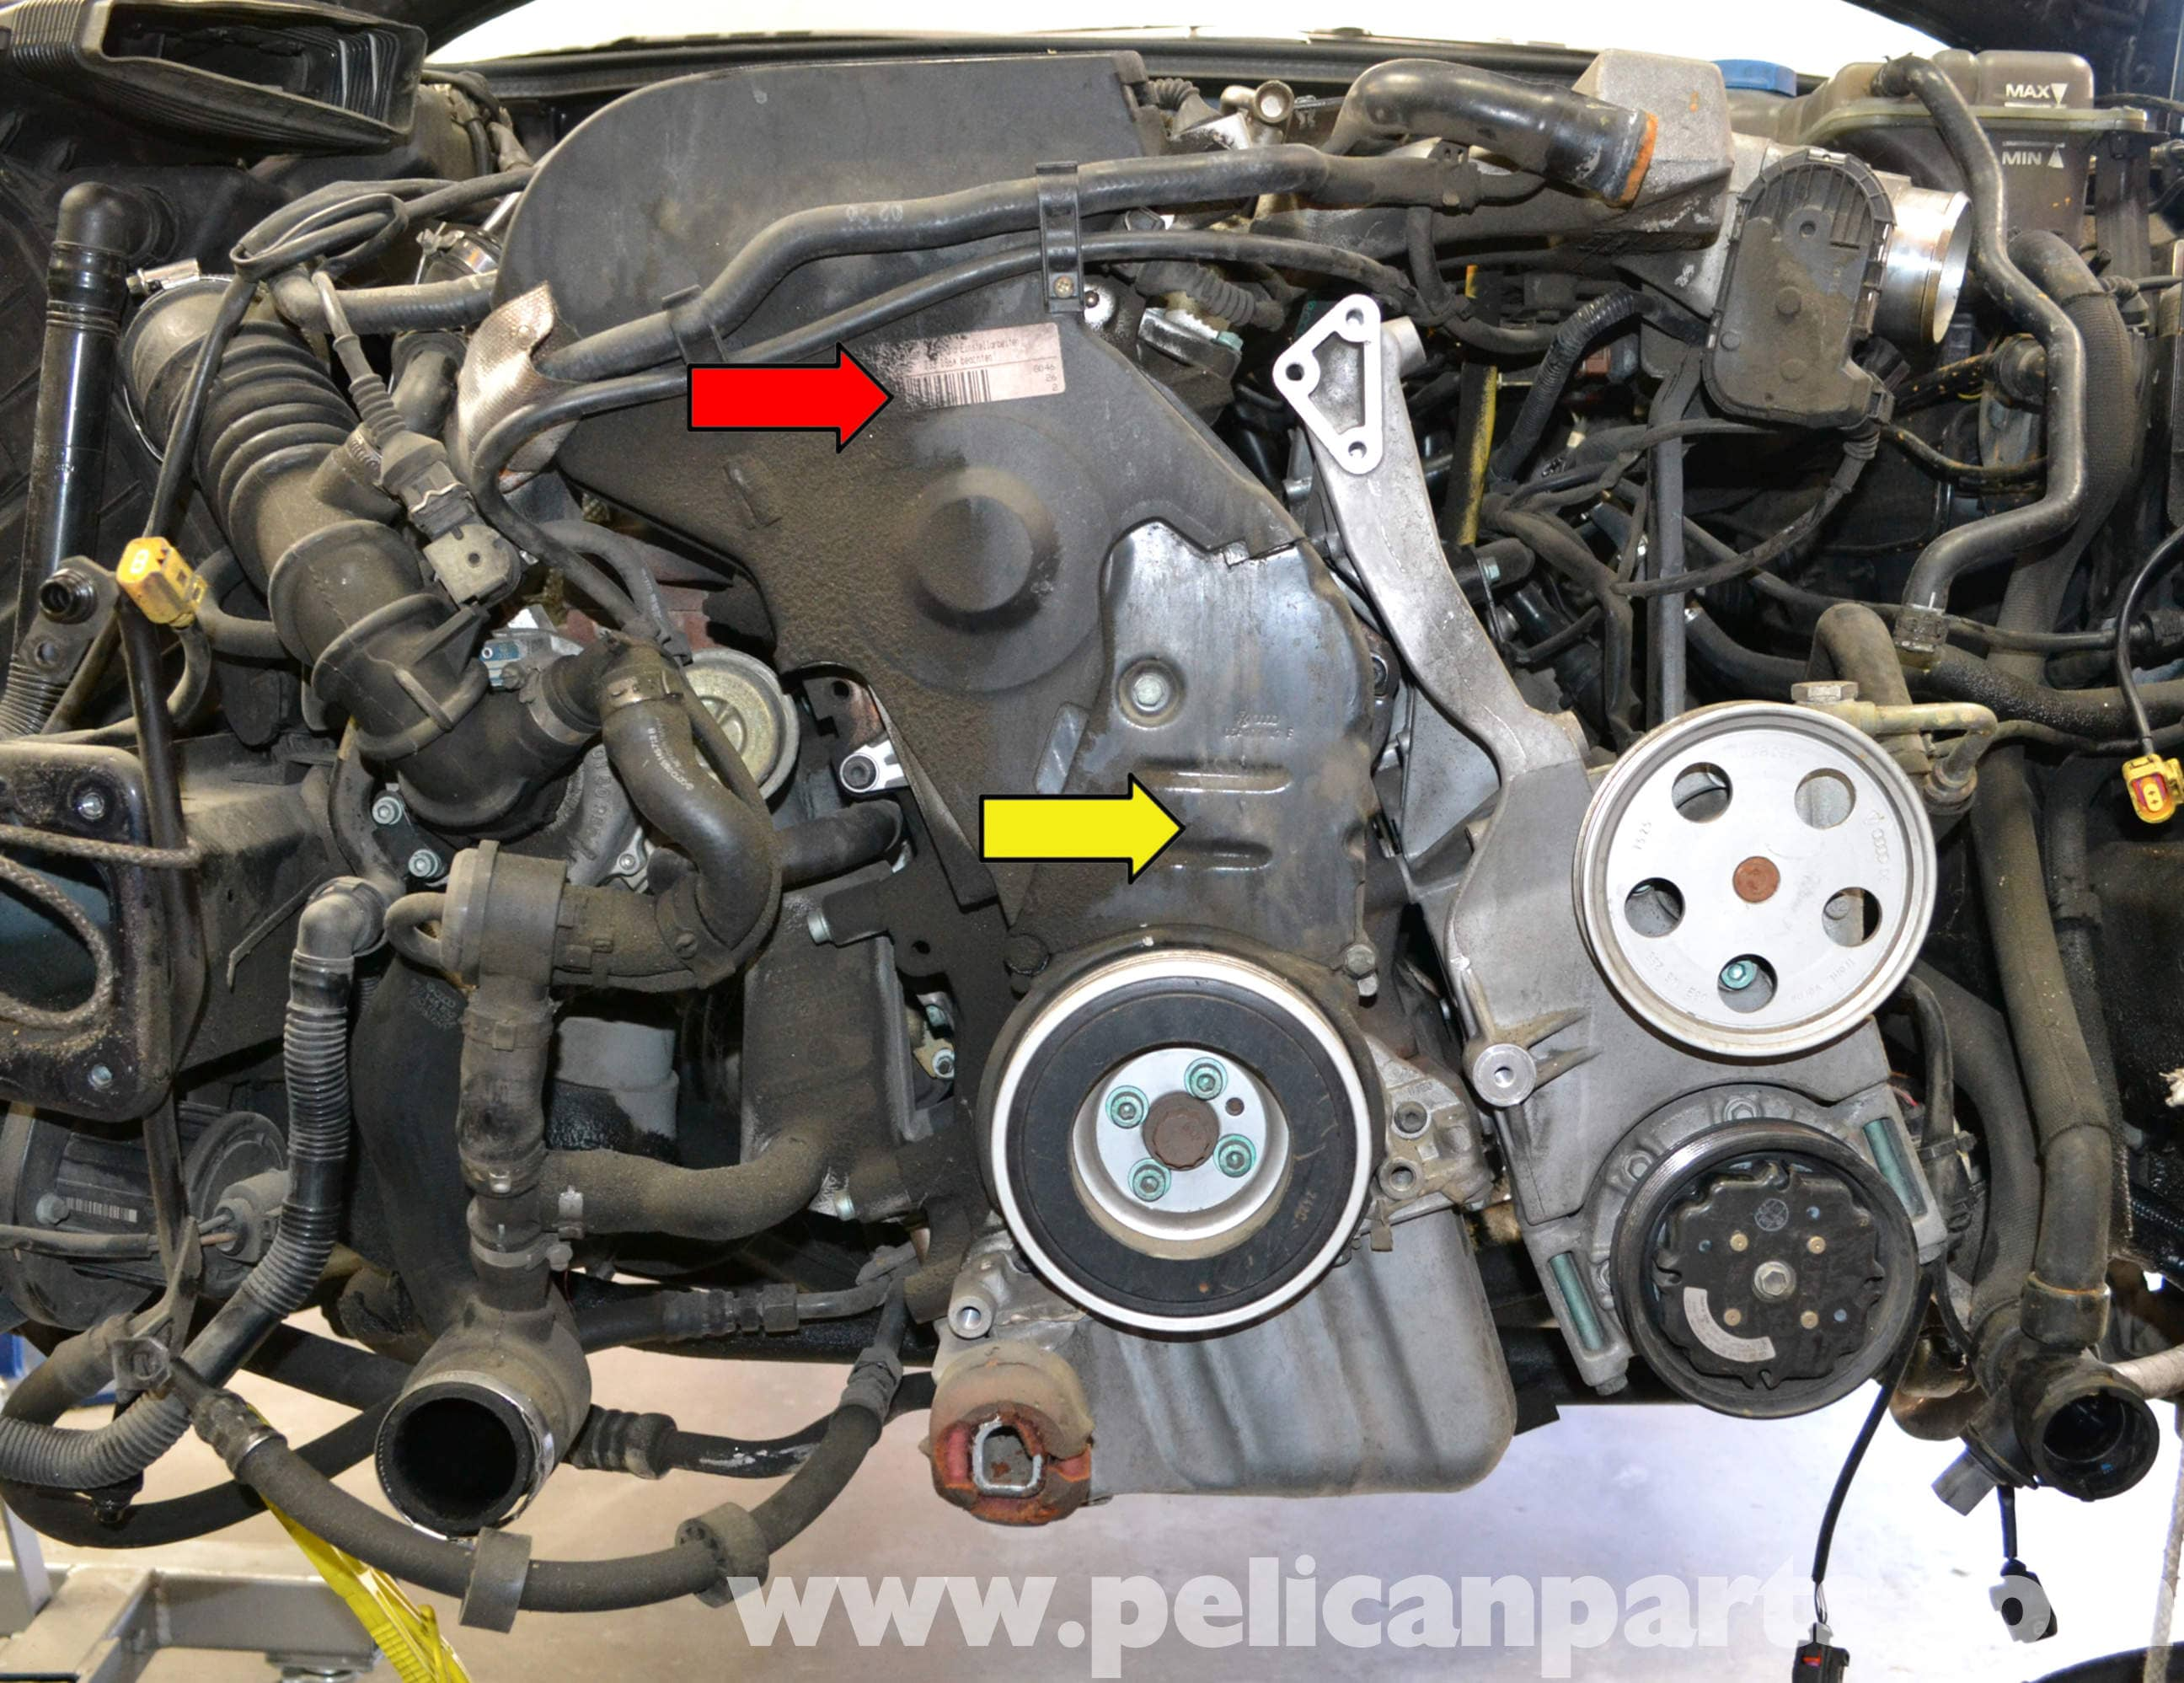 Audi A4 B6 Water Pump Replacement 1 8t 2002 2008 Pelican